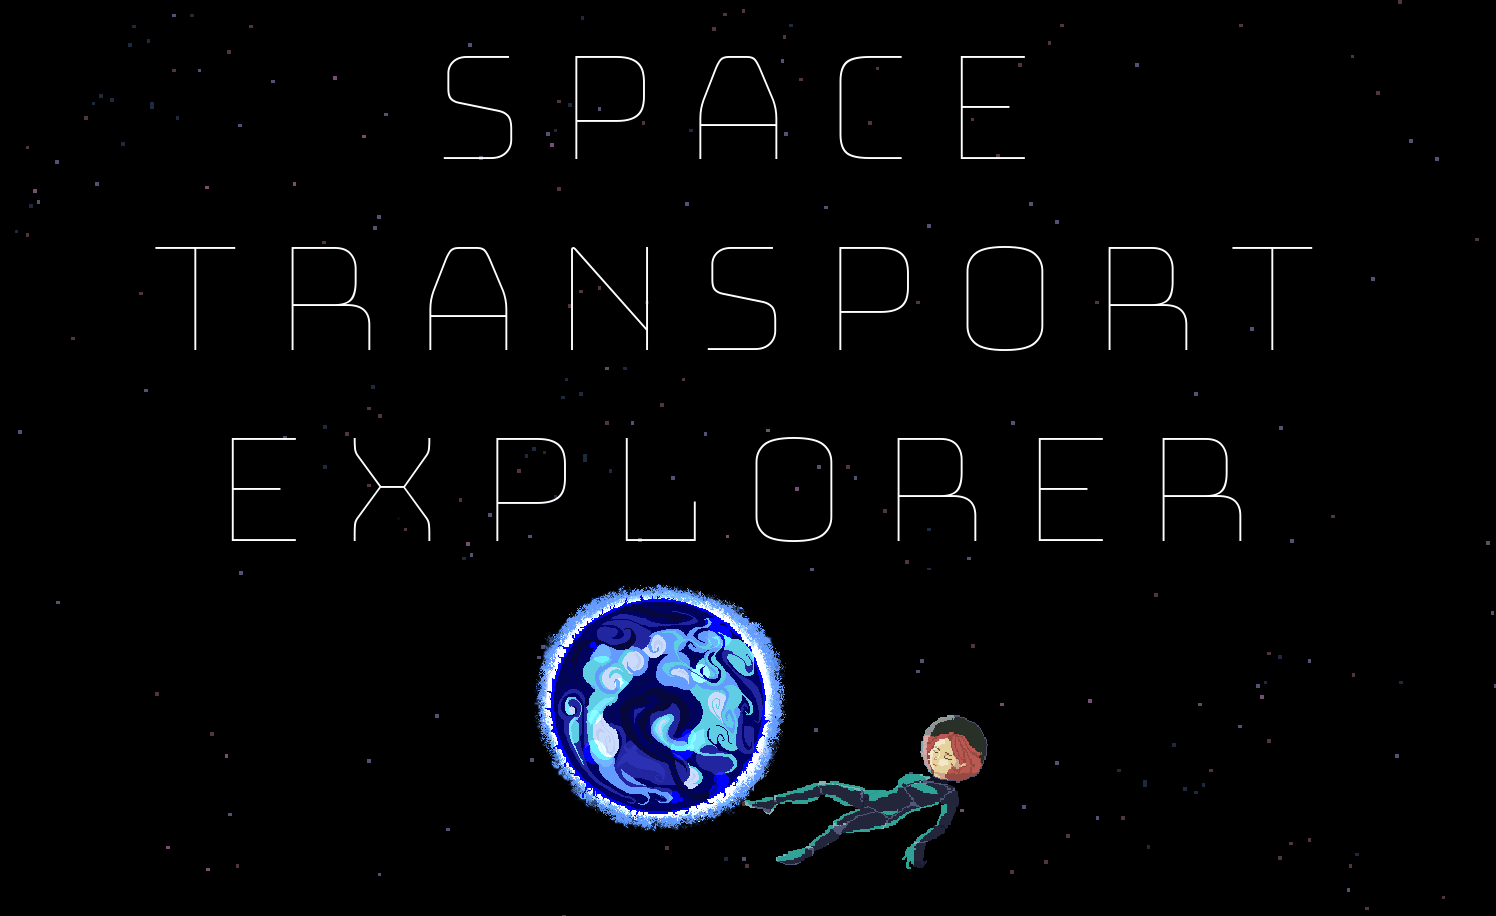 Space Transport Explorer